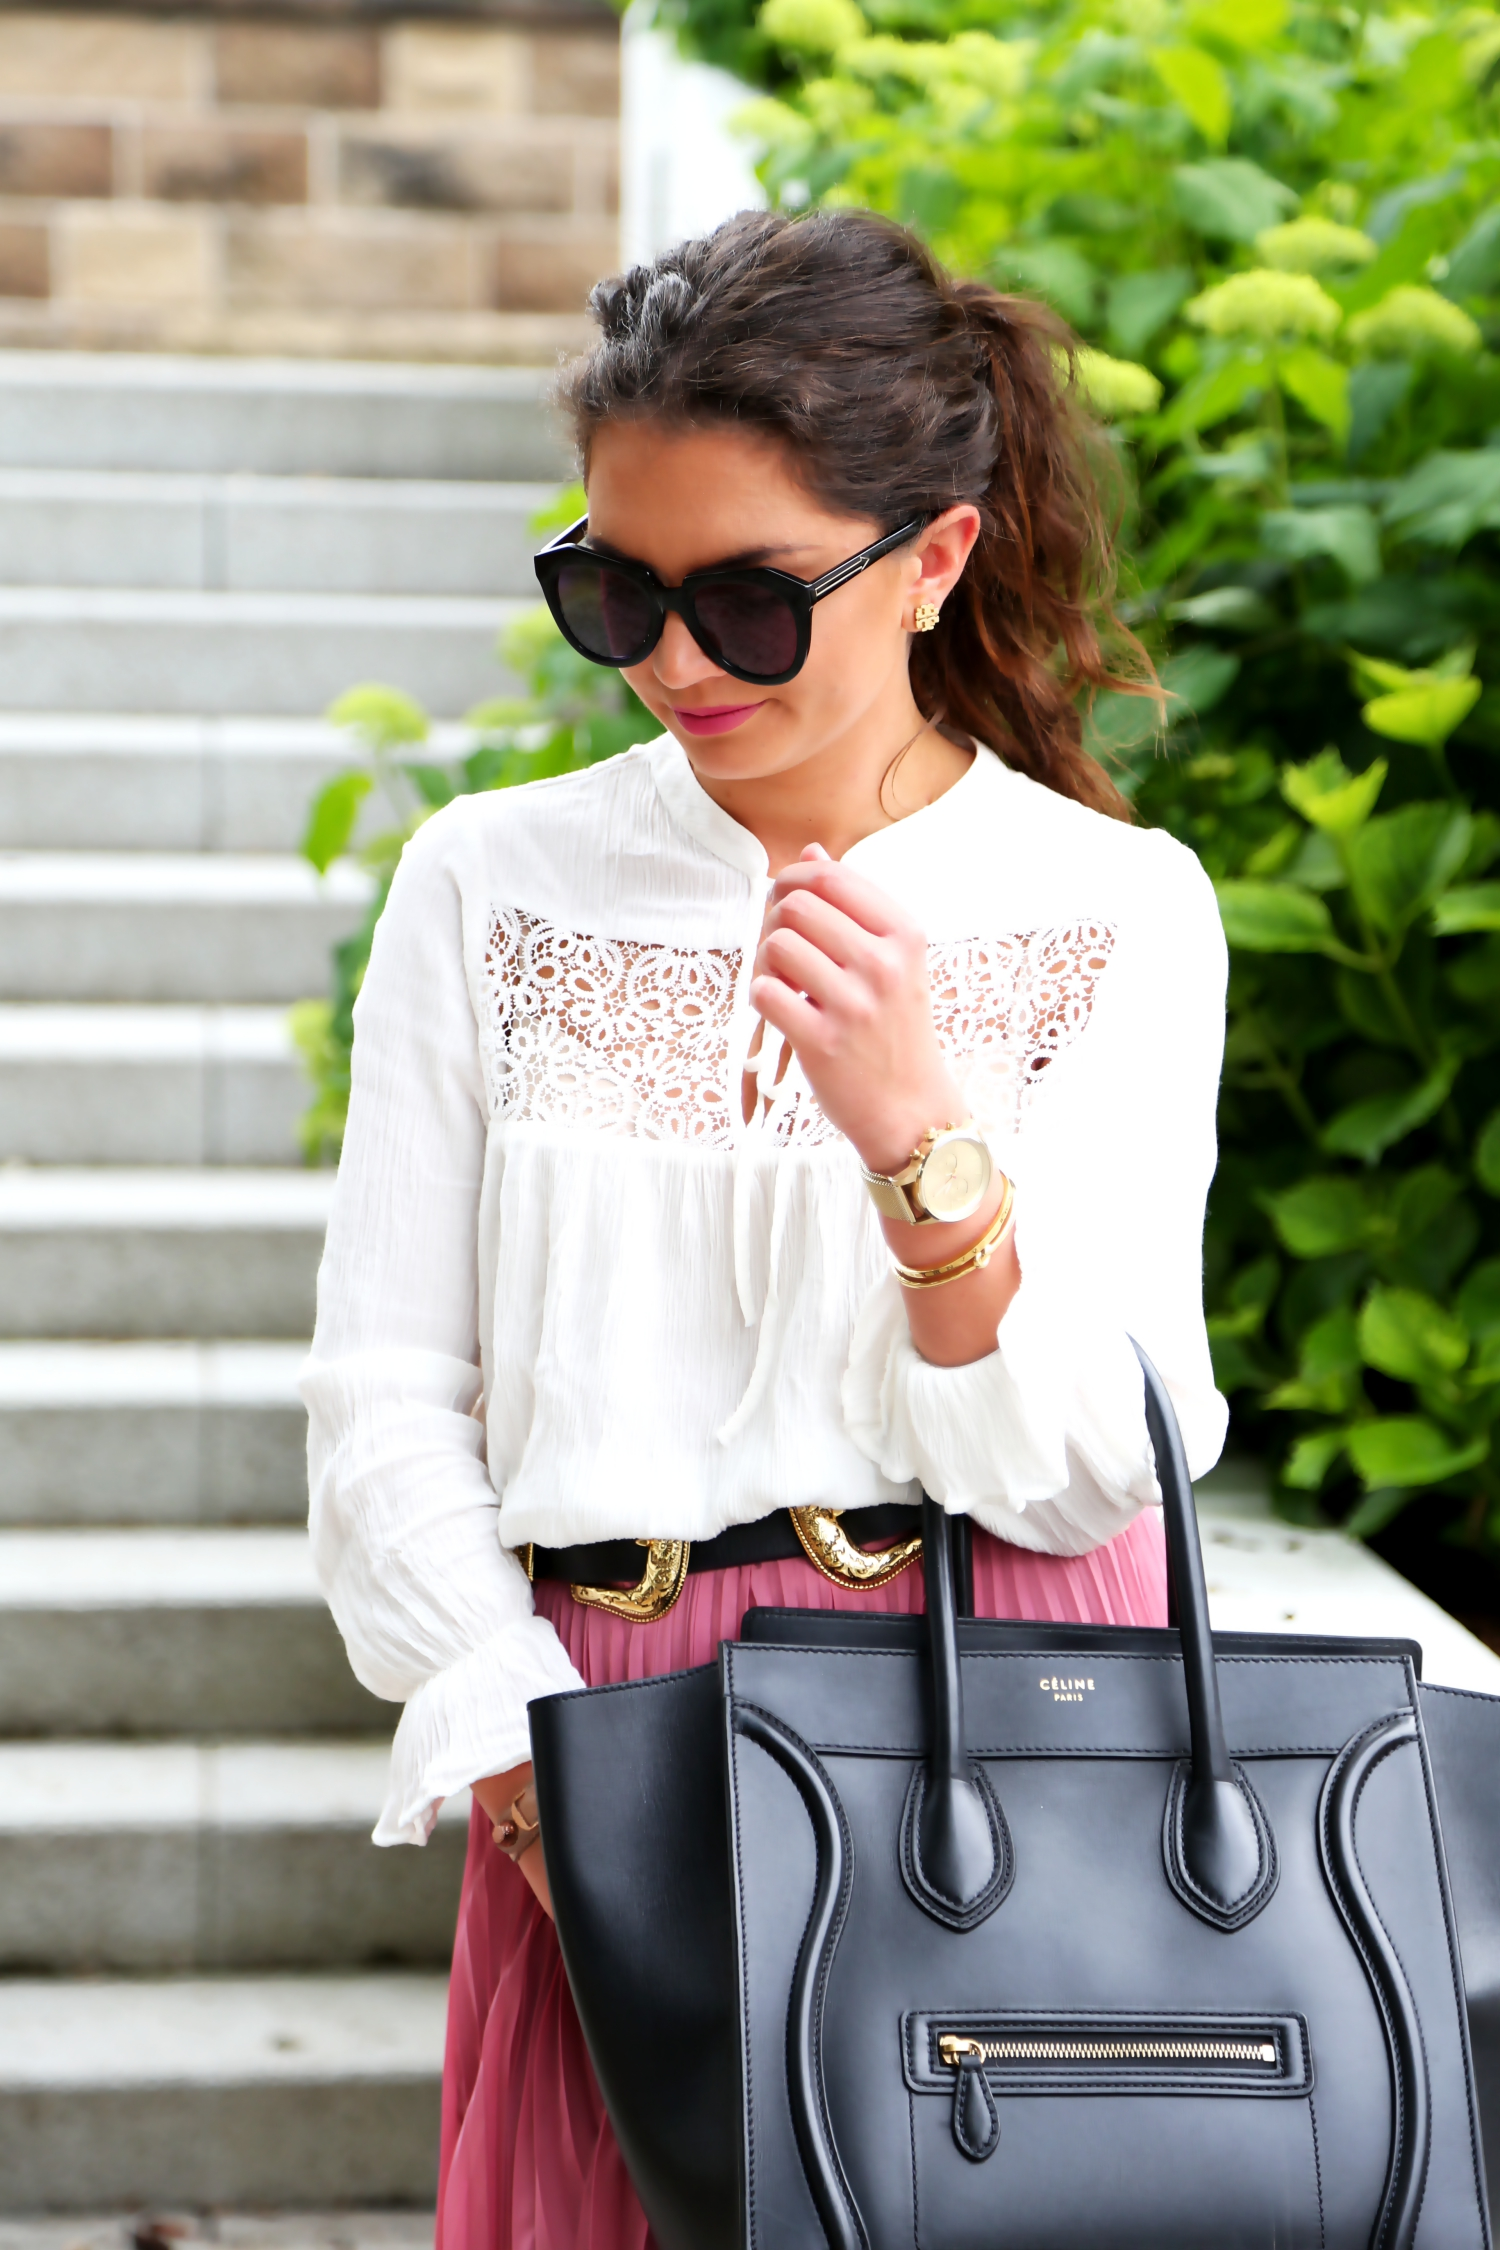 outfit-details-white-blouse-pleated-skirt-celine-luggage-bag